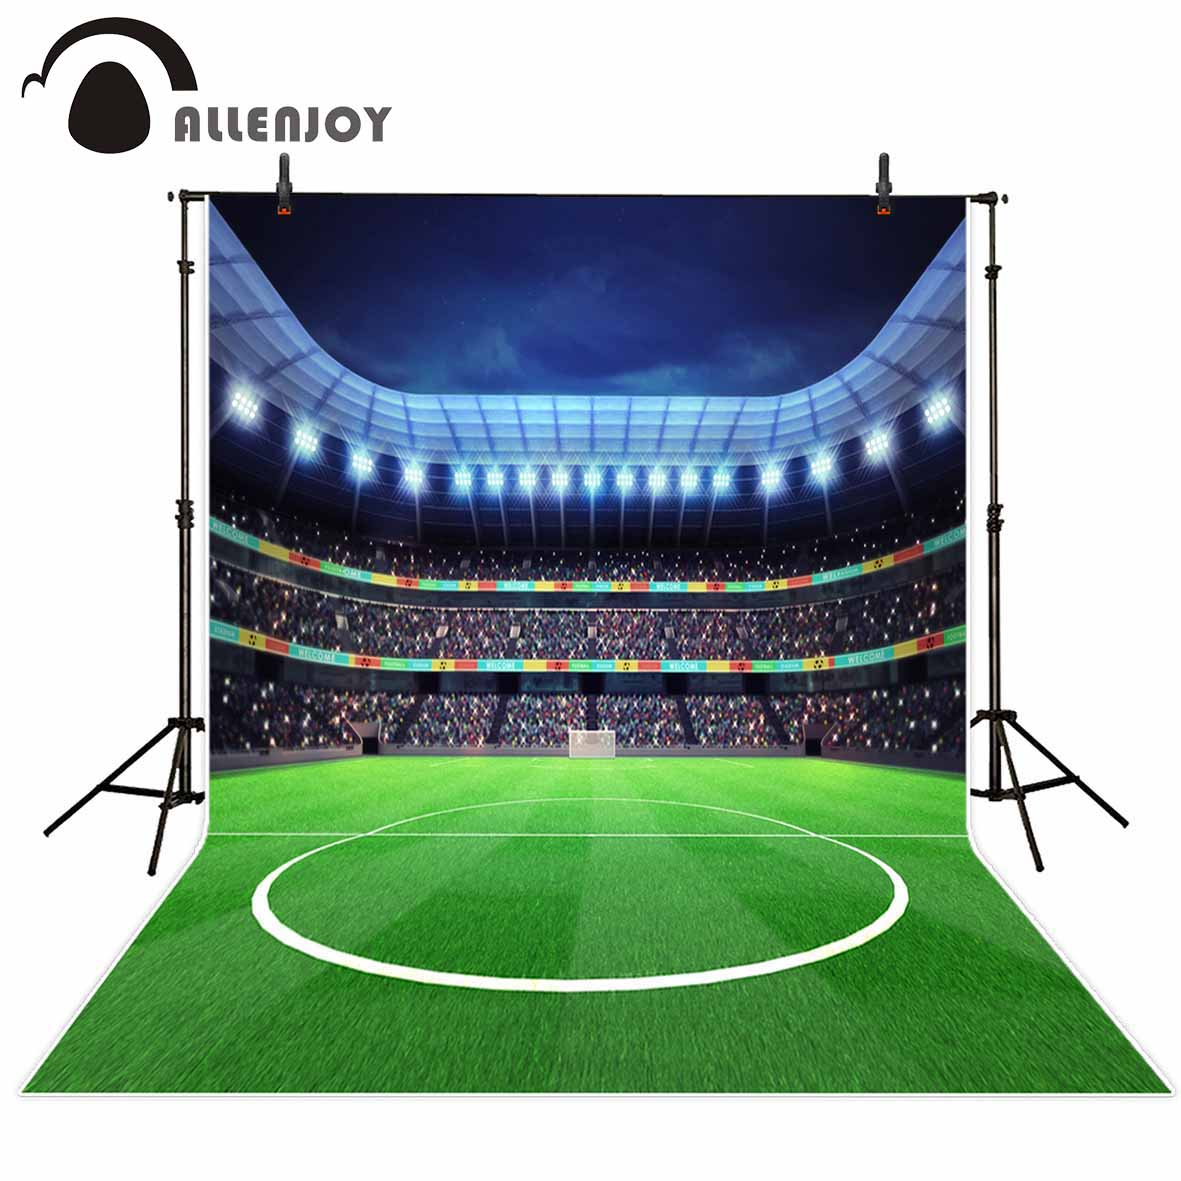 Allenjoy new photography theme background Grass Green Football Stadium competition natural children photos camera fotografica